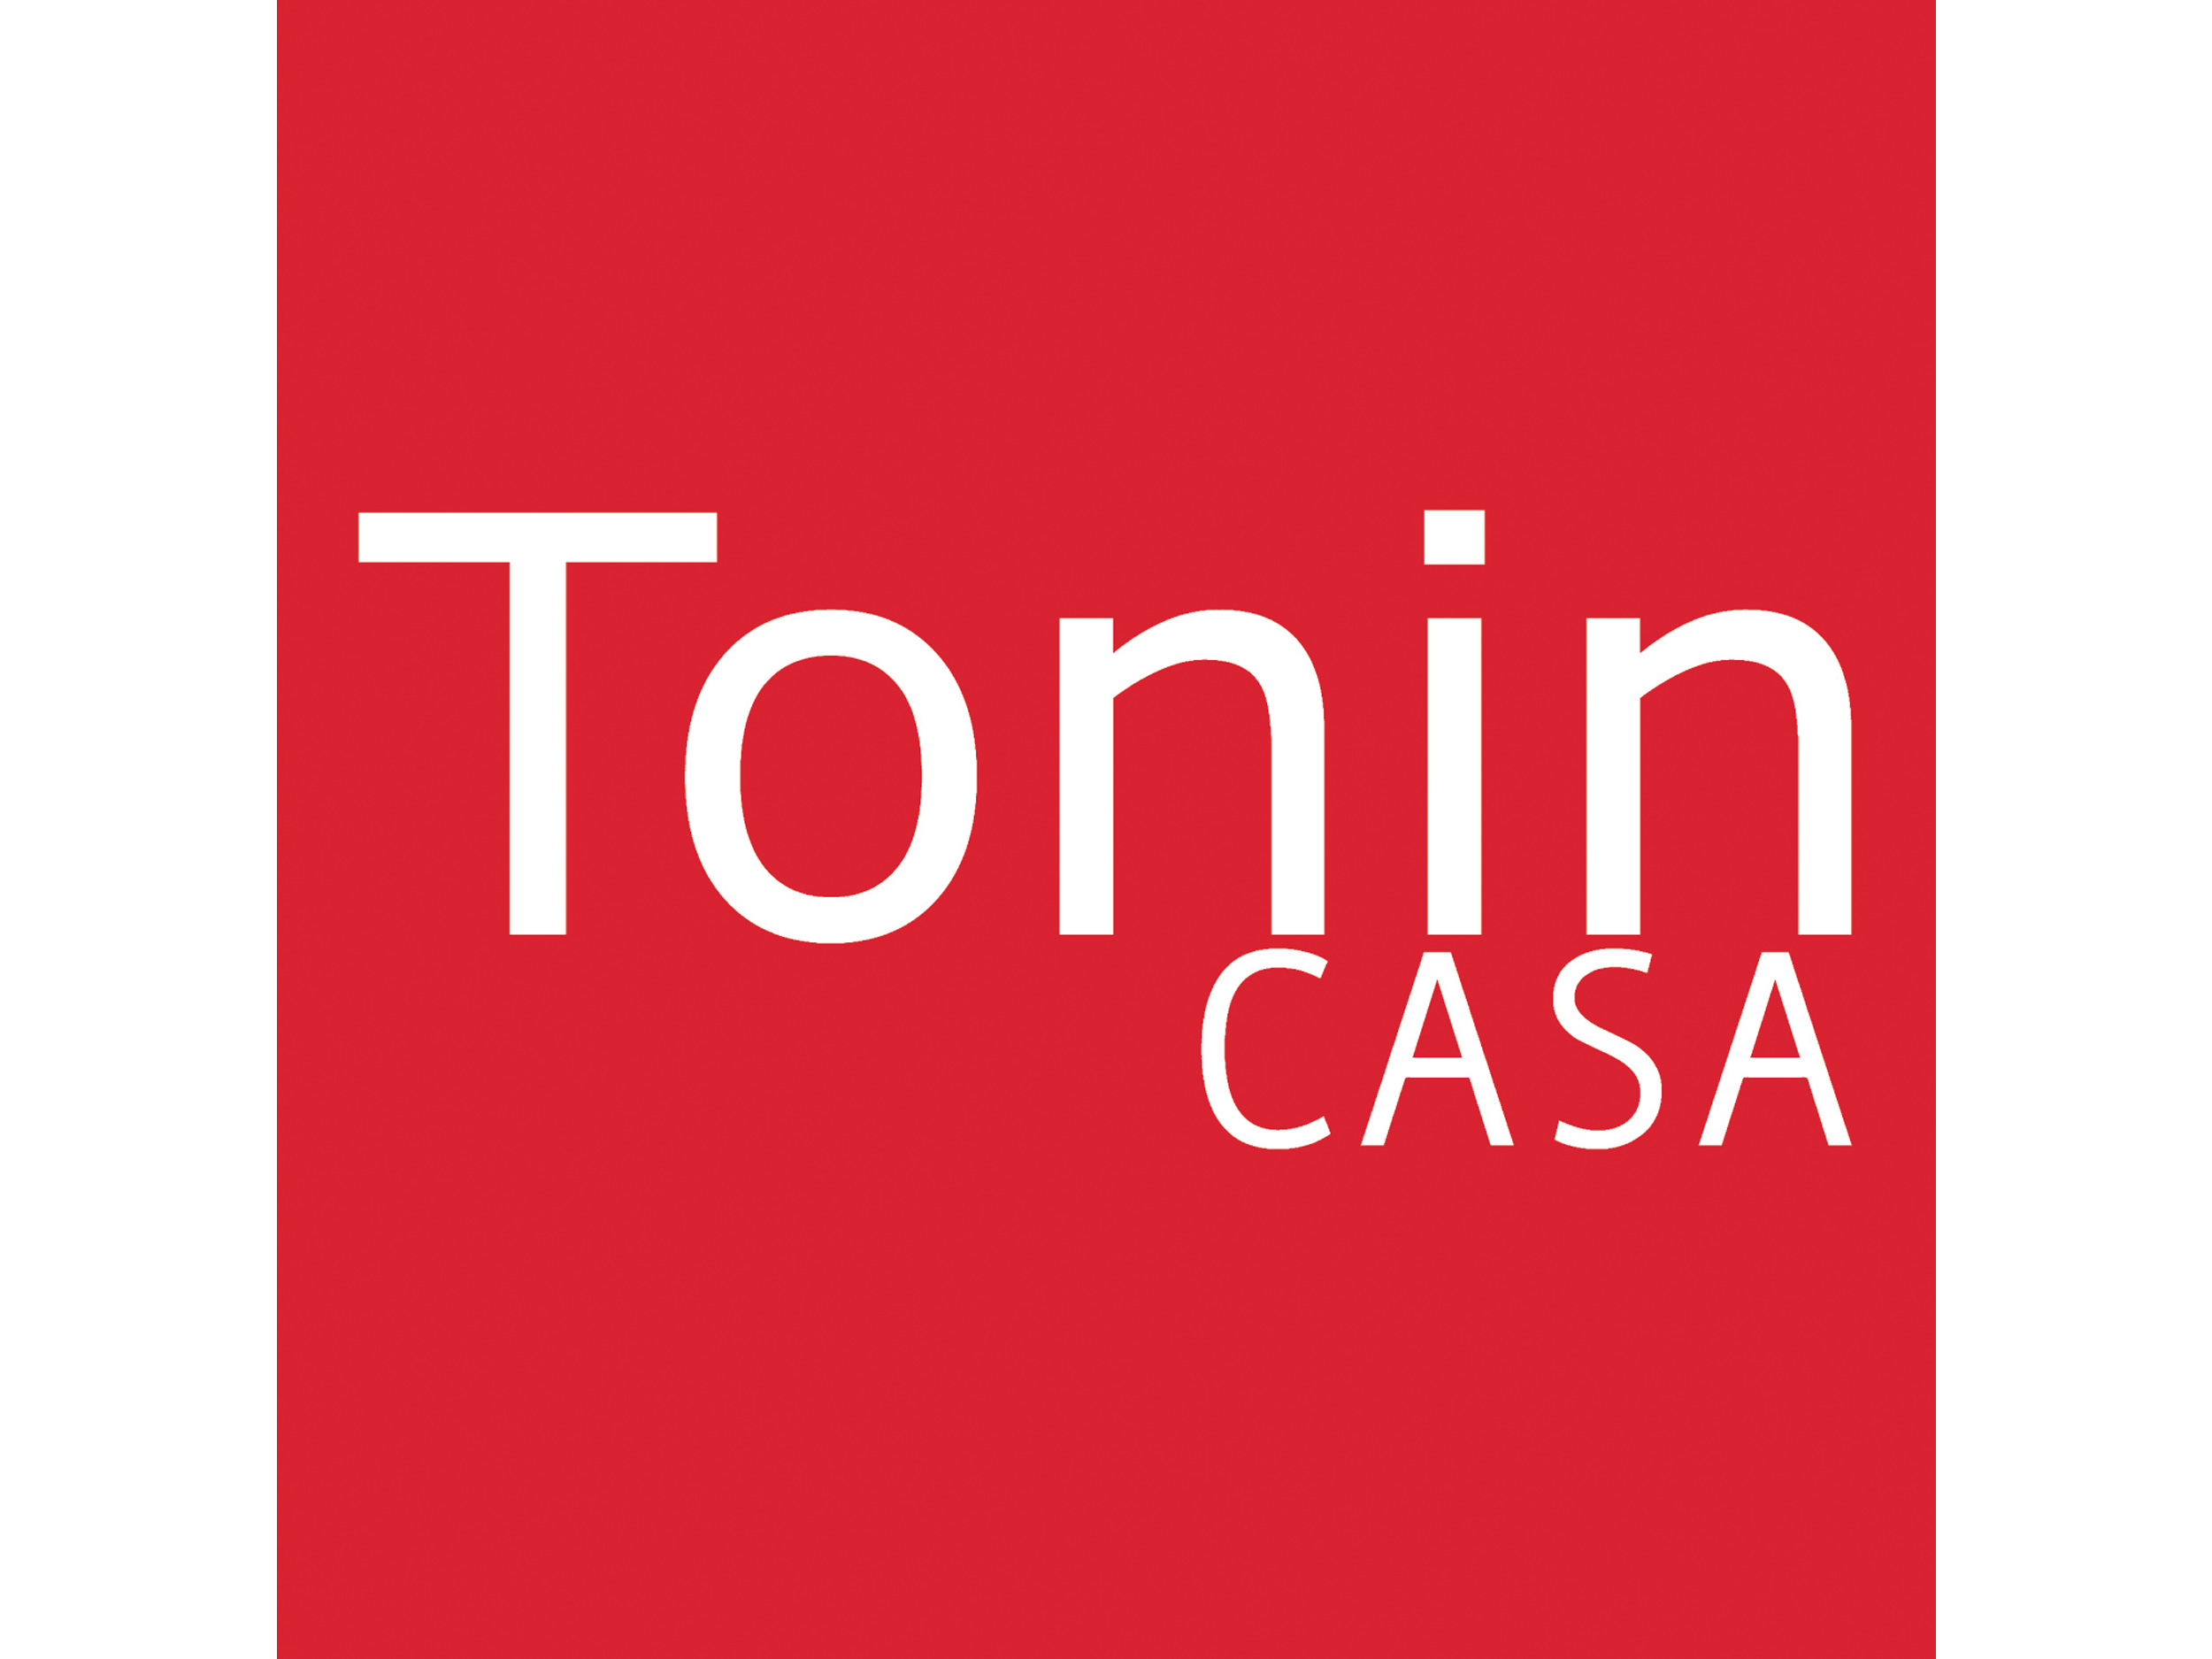 Tonin Casa - Tonin Casa started more than 40 years ago, from scratch, producing shoe racks. In order to have the best possible products within Italian craftsmanship, they asked the most skilled artisans to do what they did best: to build flawless furniture. This goal, still remains Tonin casa's main objective to this day.